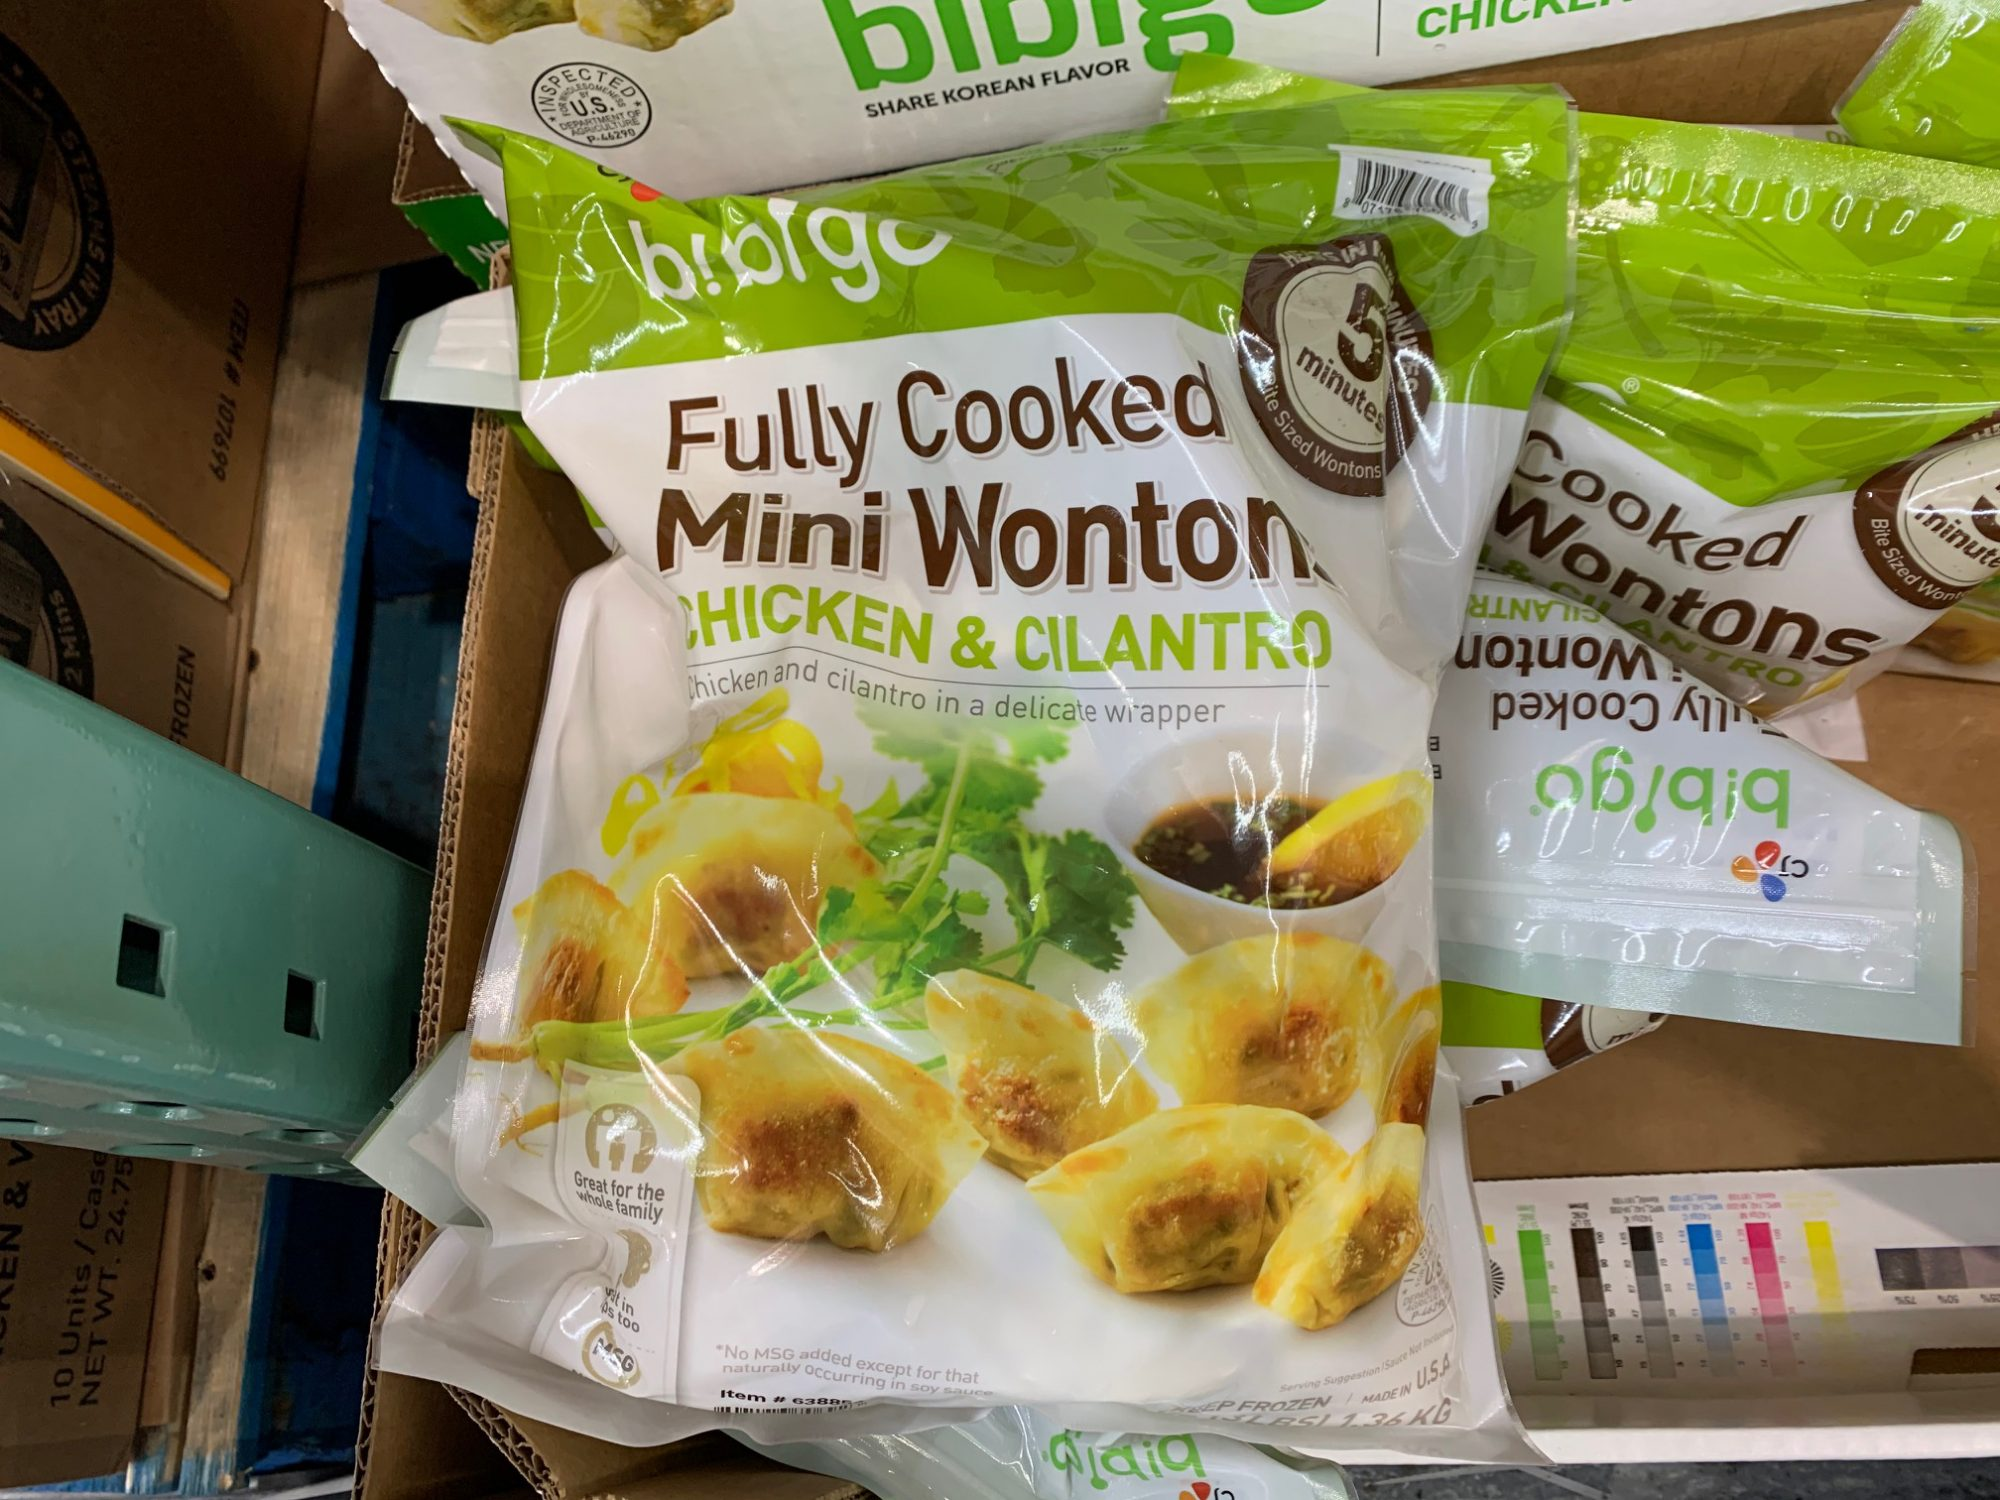 Bibigo Chicken & Cilantro Mini Wontons